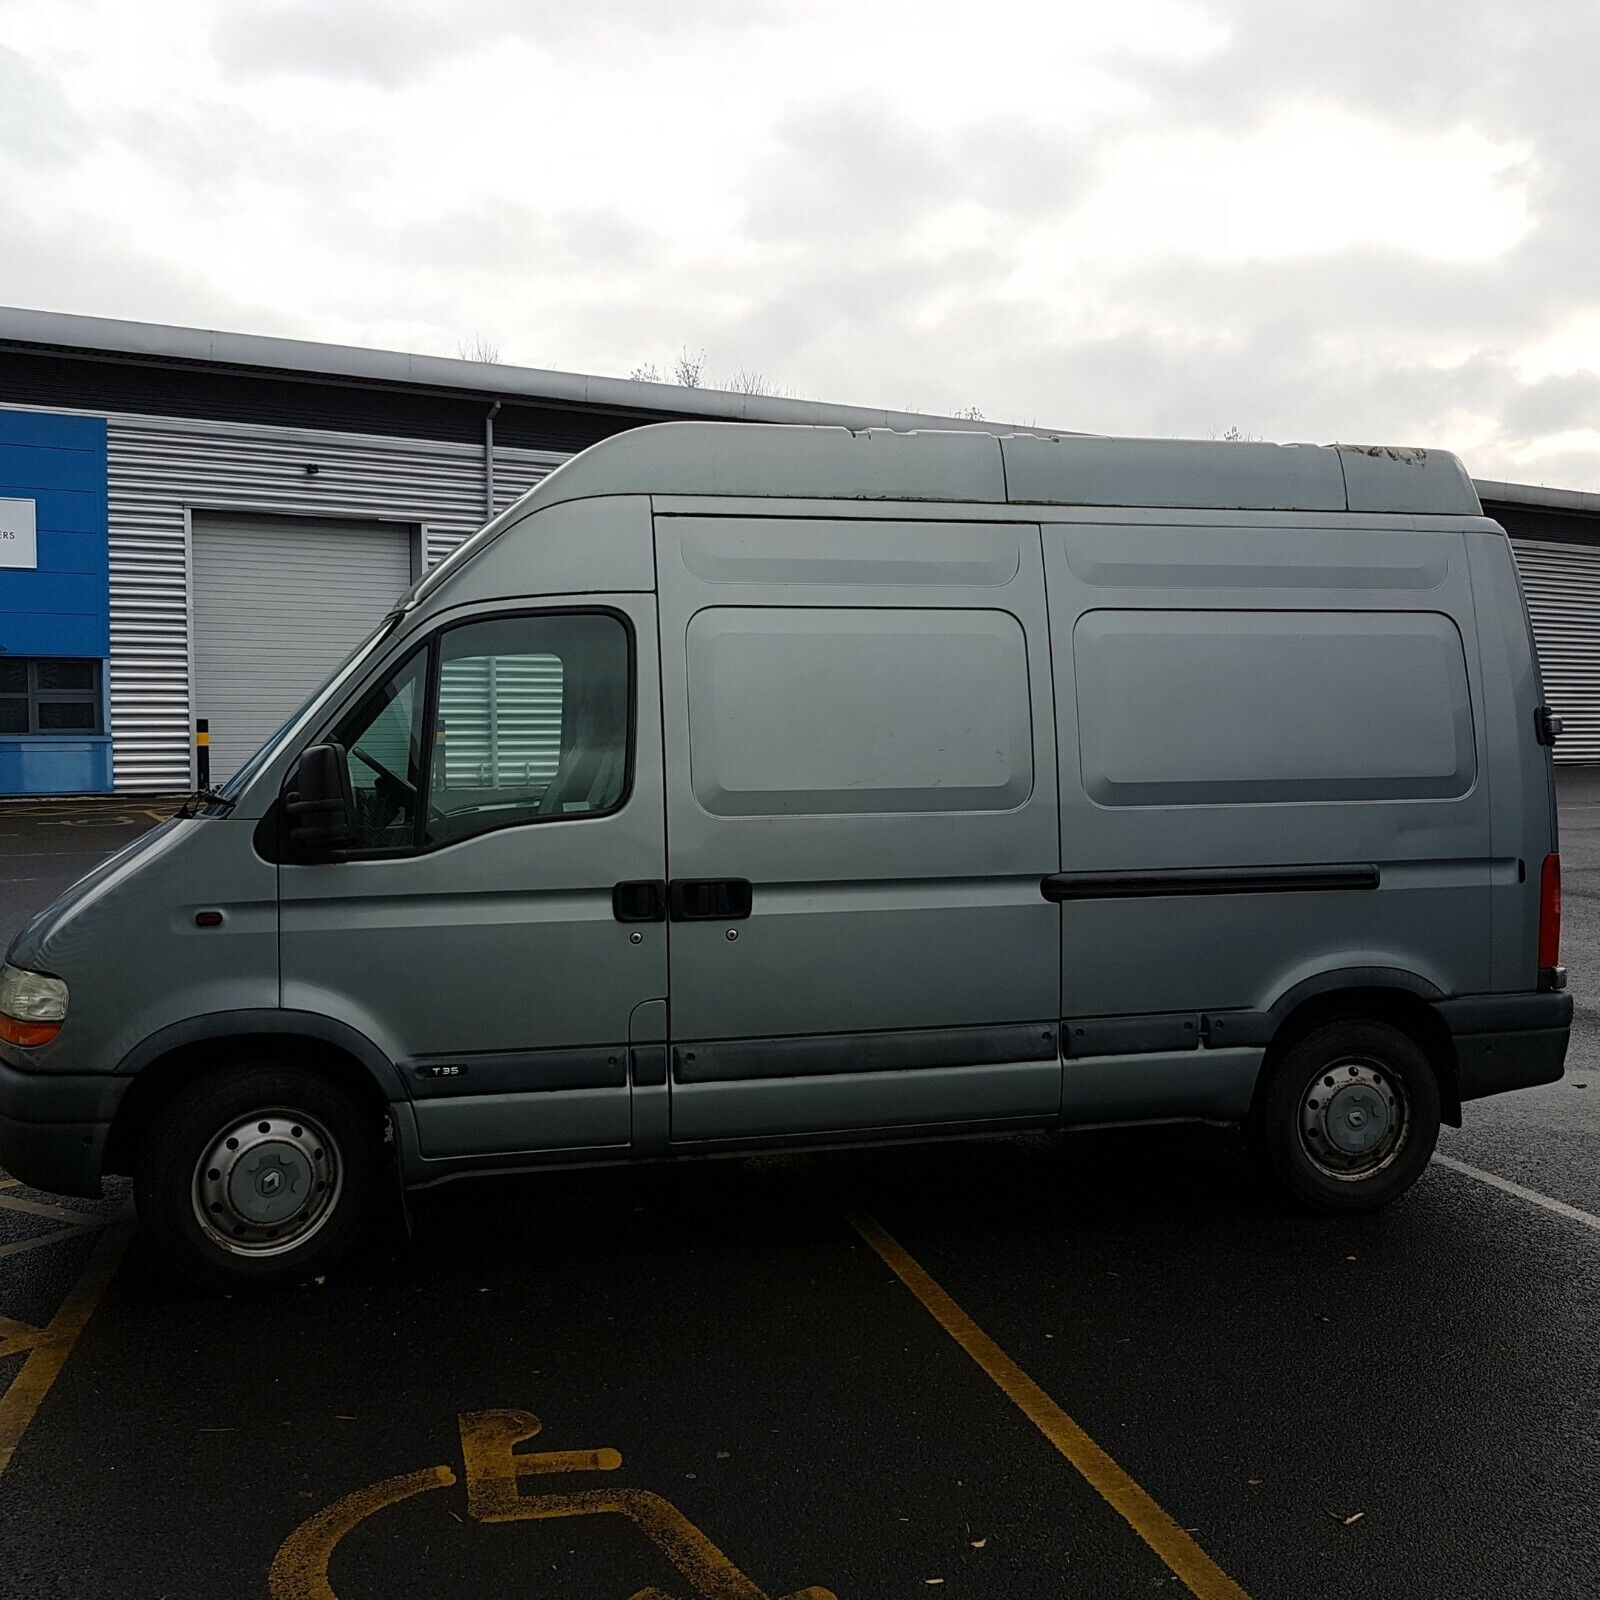 Renault-Master-DCI-22-cc-medium-wheelbase-high-top-fair-condition12-months-MOT